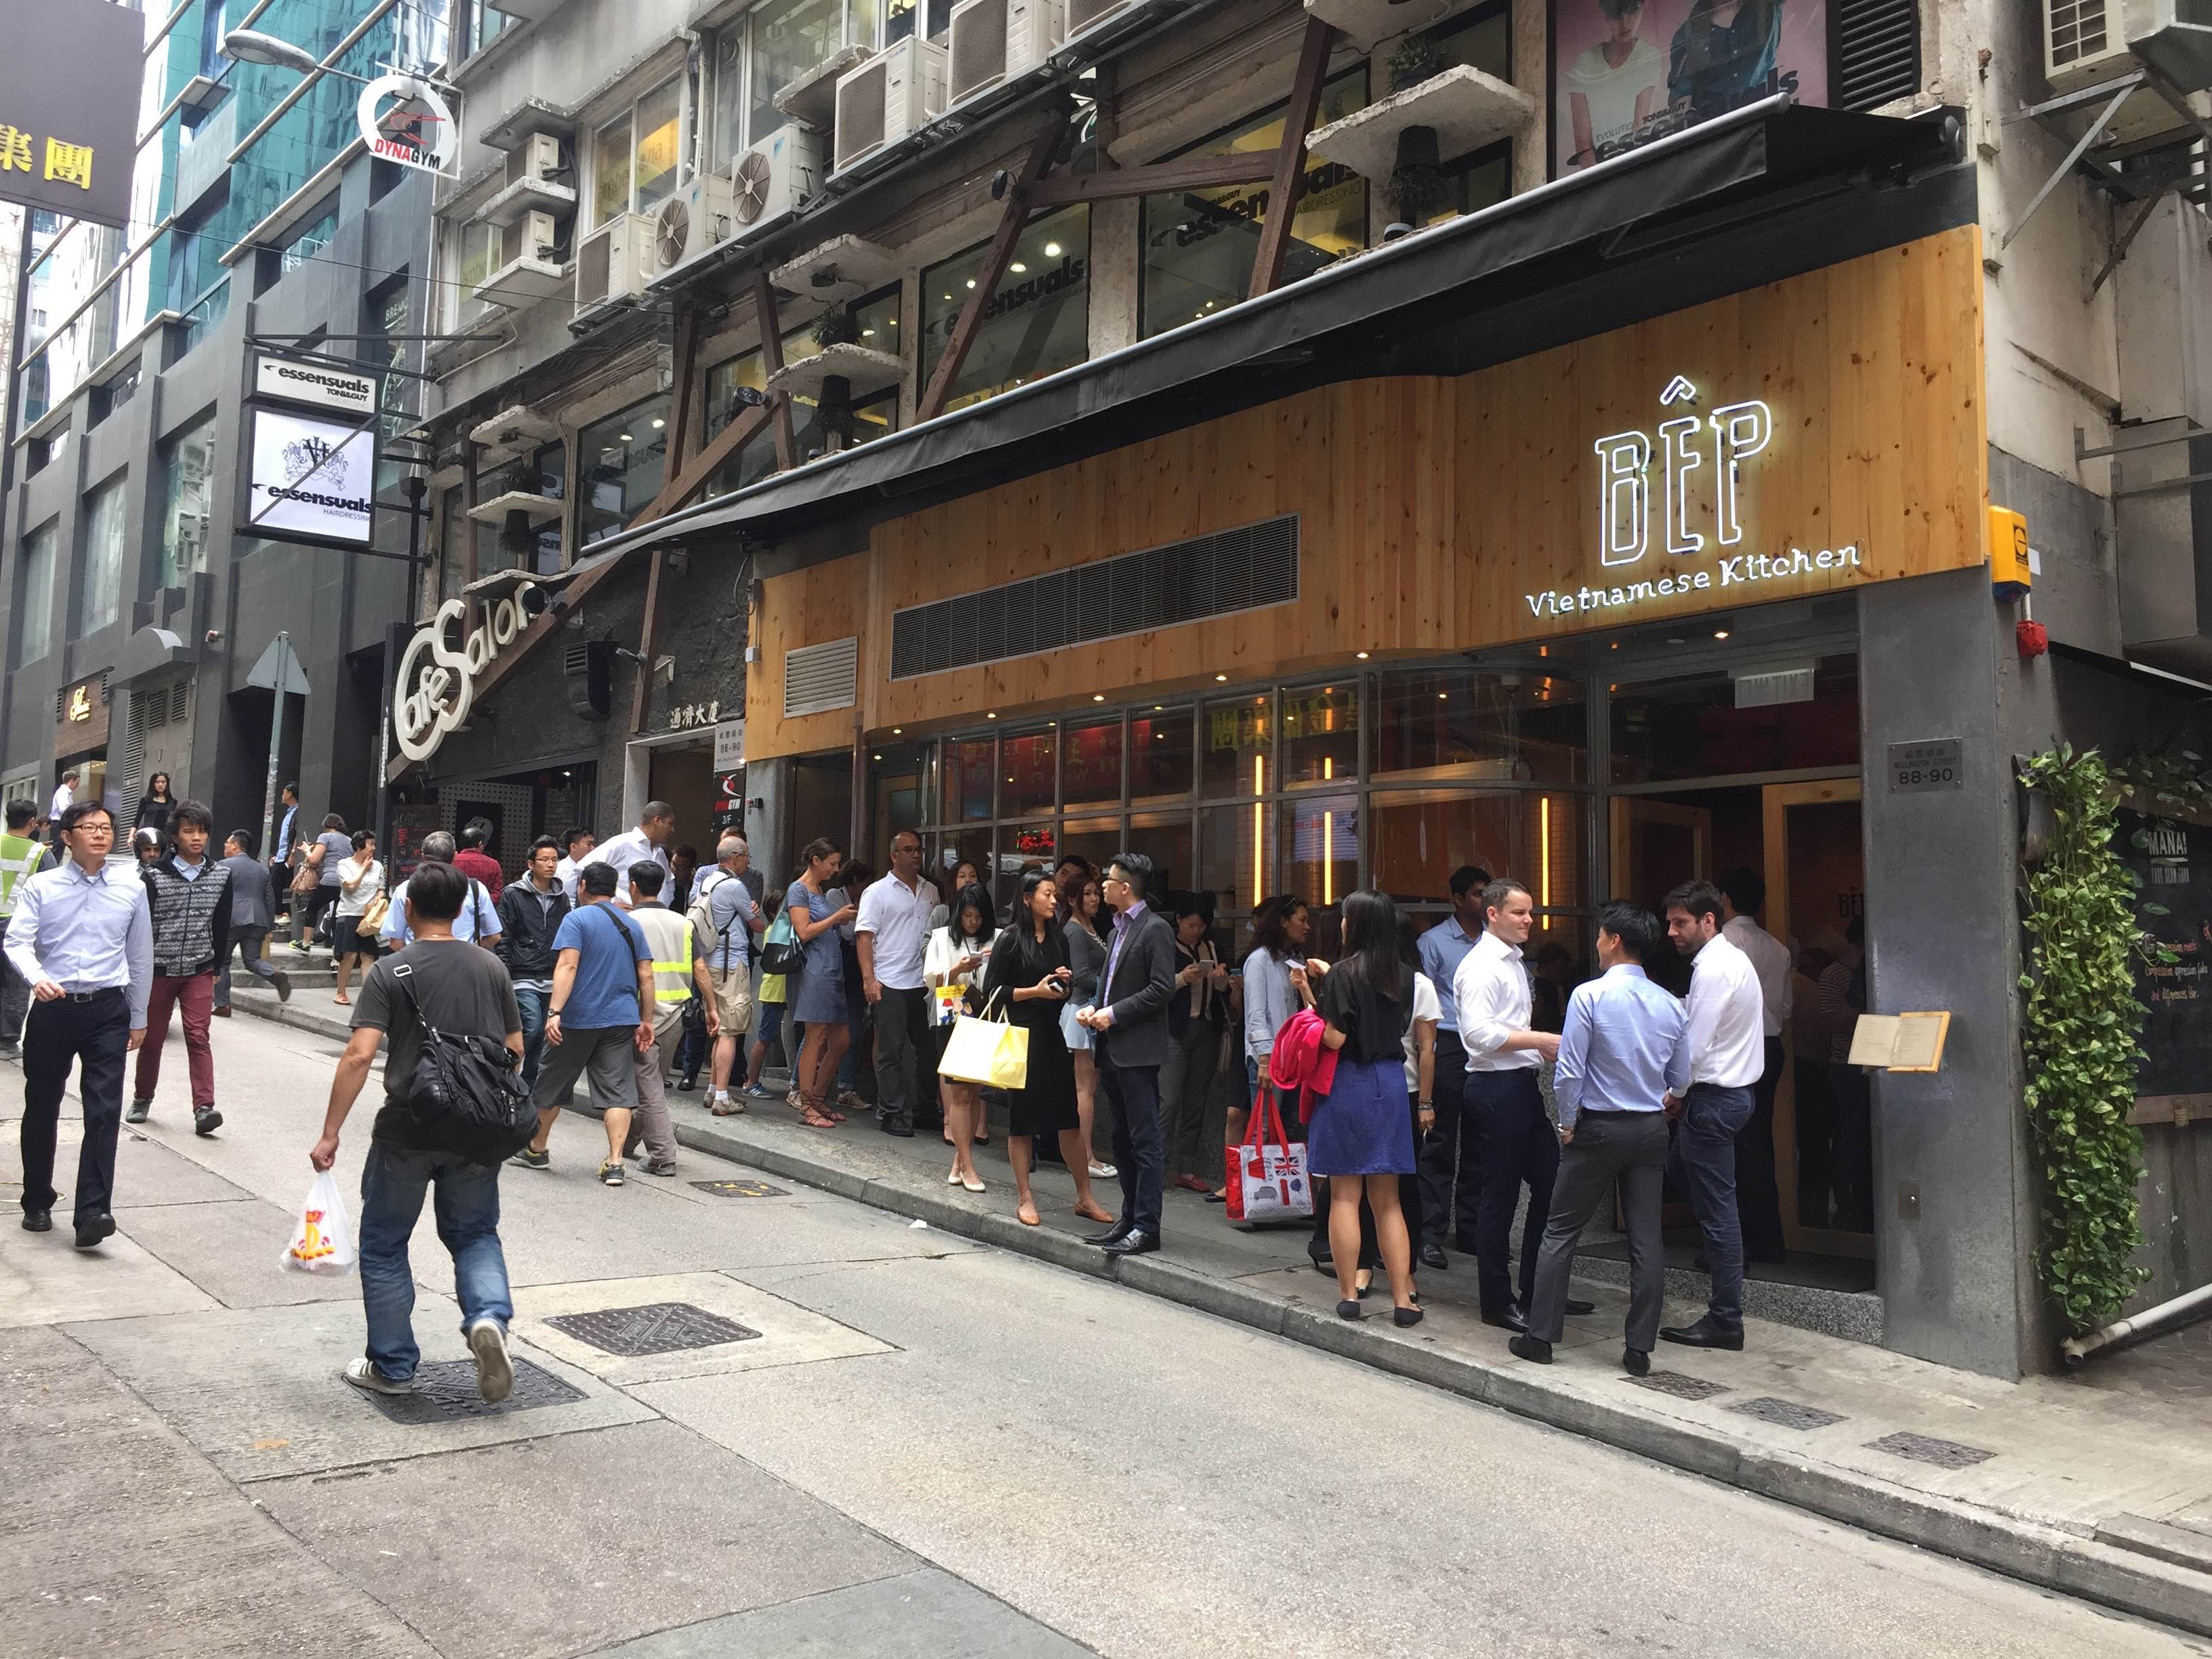 Restaurants on Wellington Street packed with foodie traffic